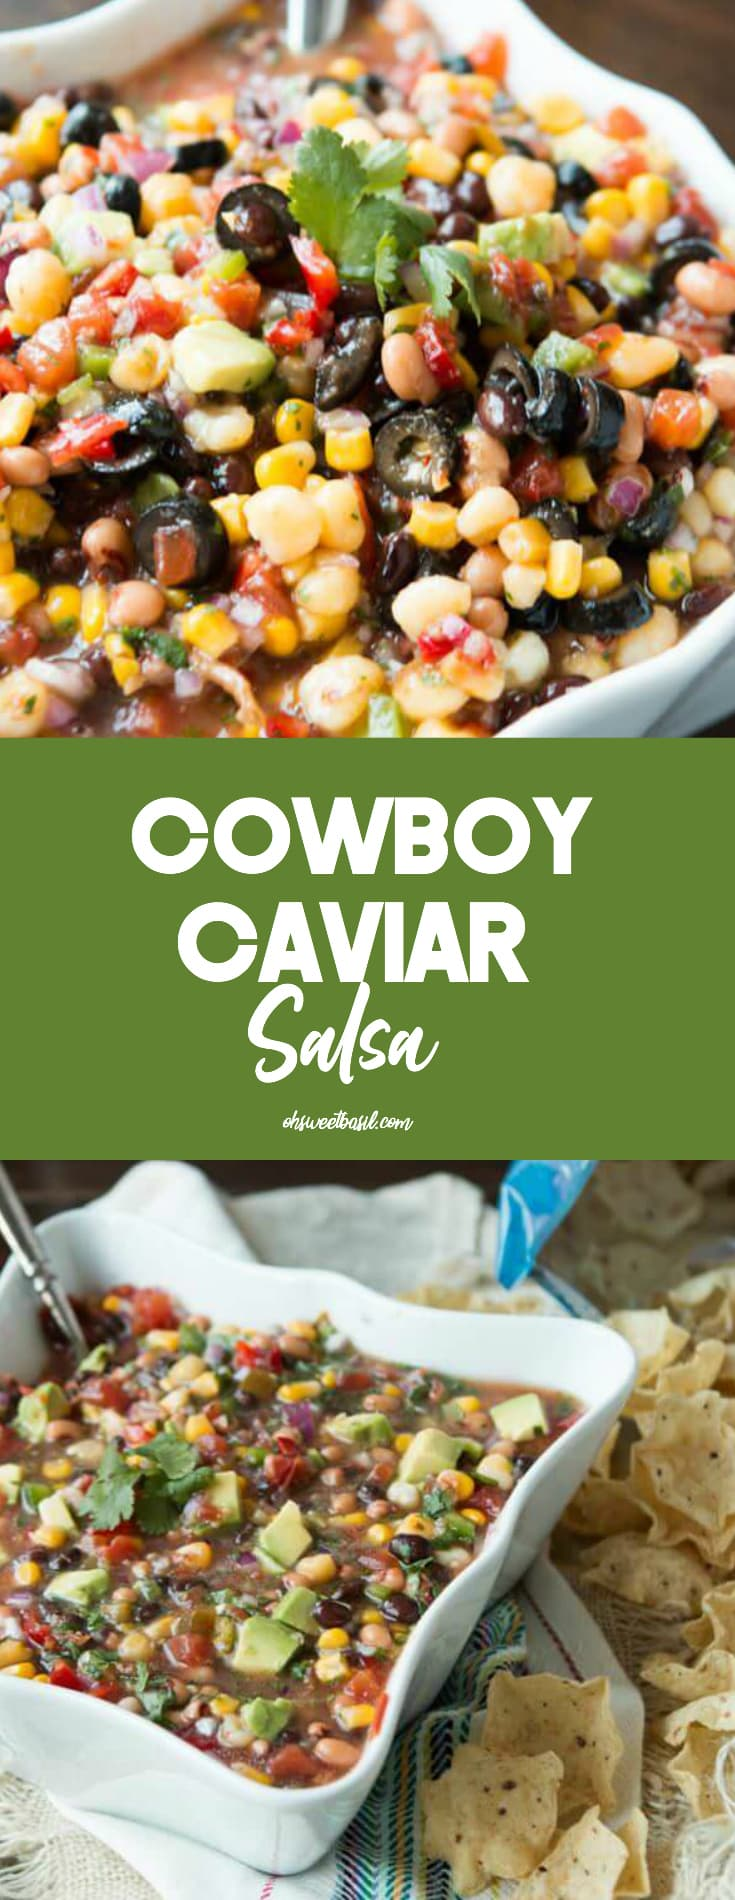 A bowl of cowboy caviar salsa with chips on the side